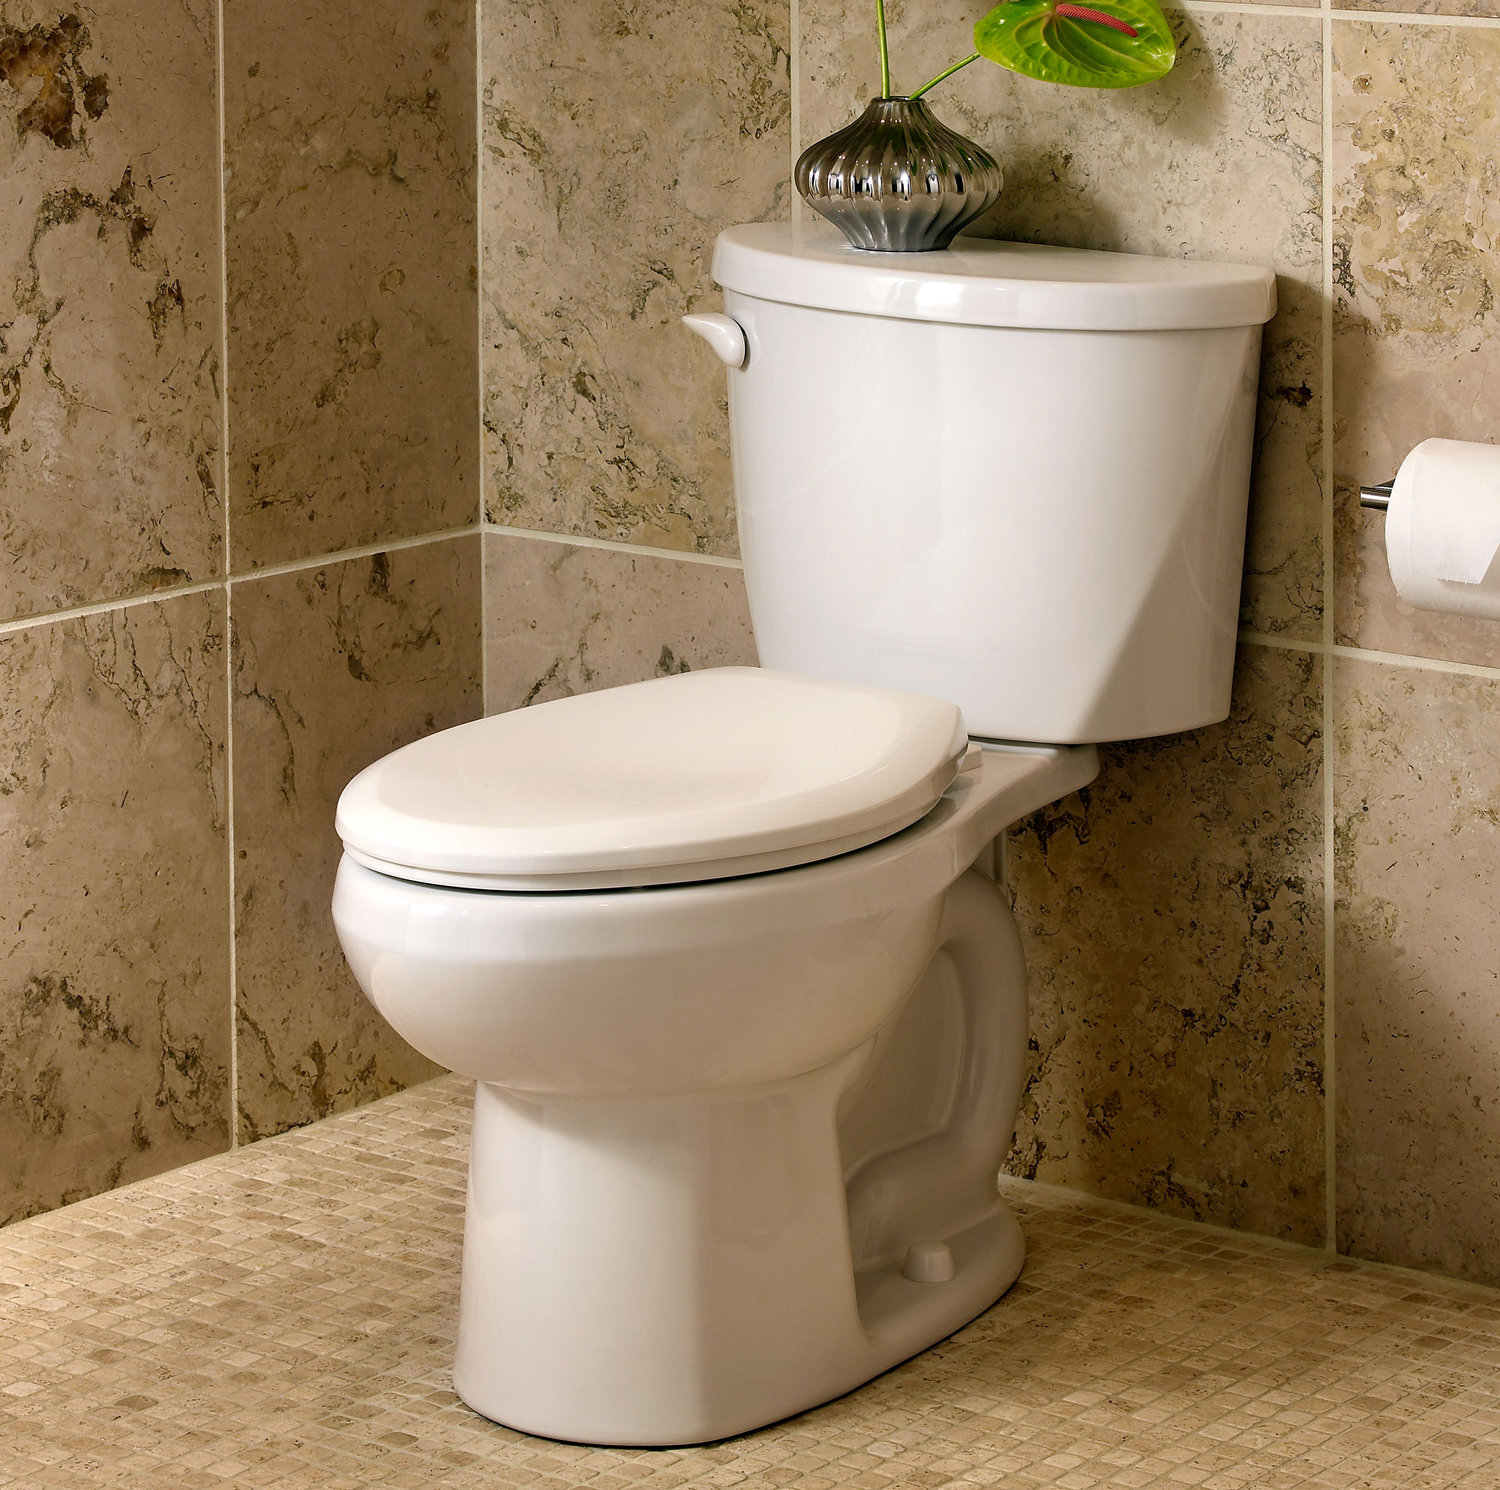 American standard everclean elongated toilet for Toilet decor pictures